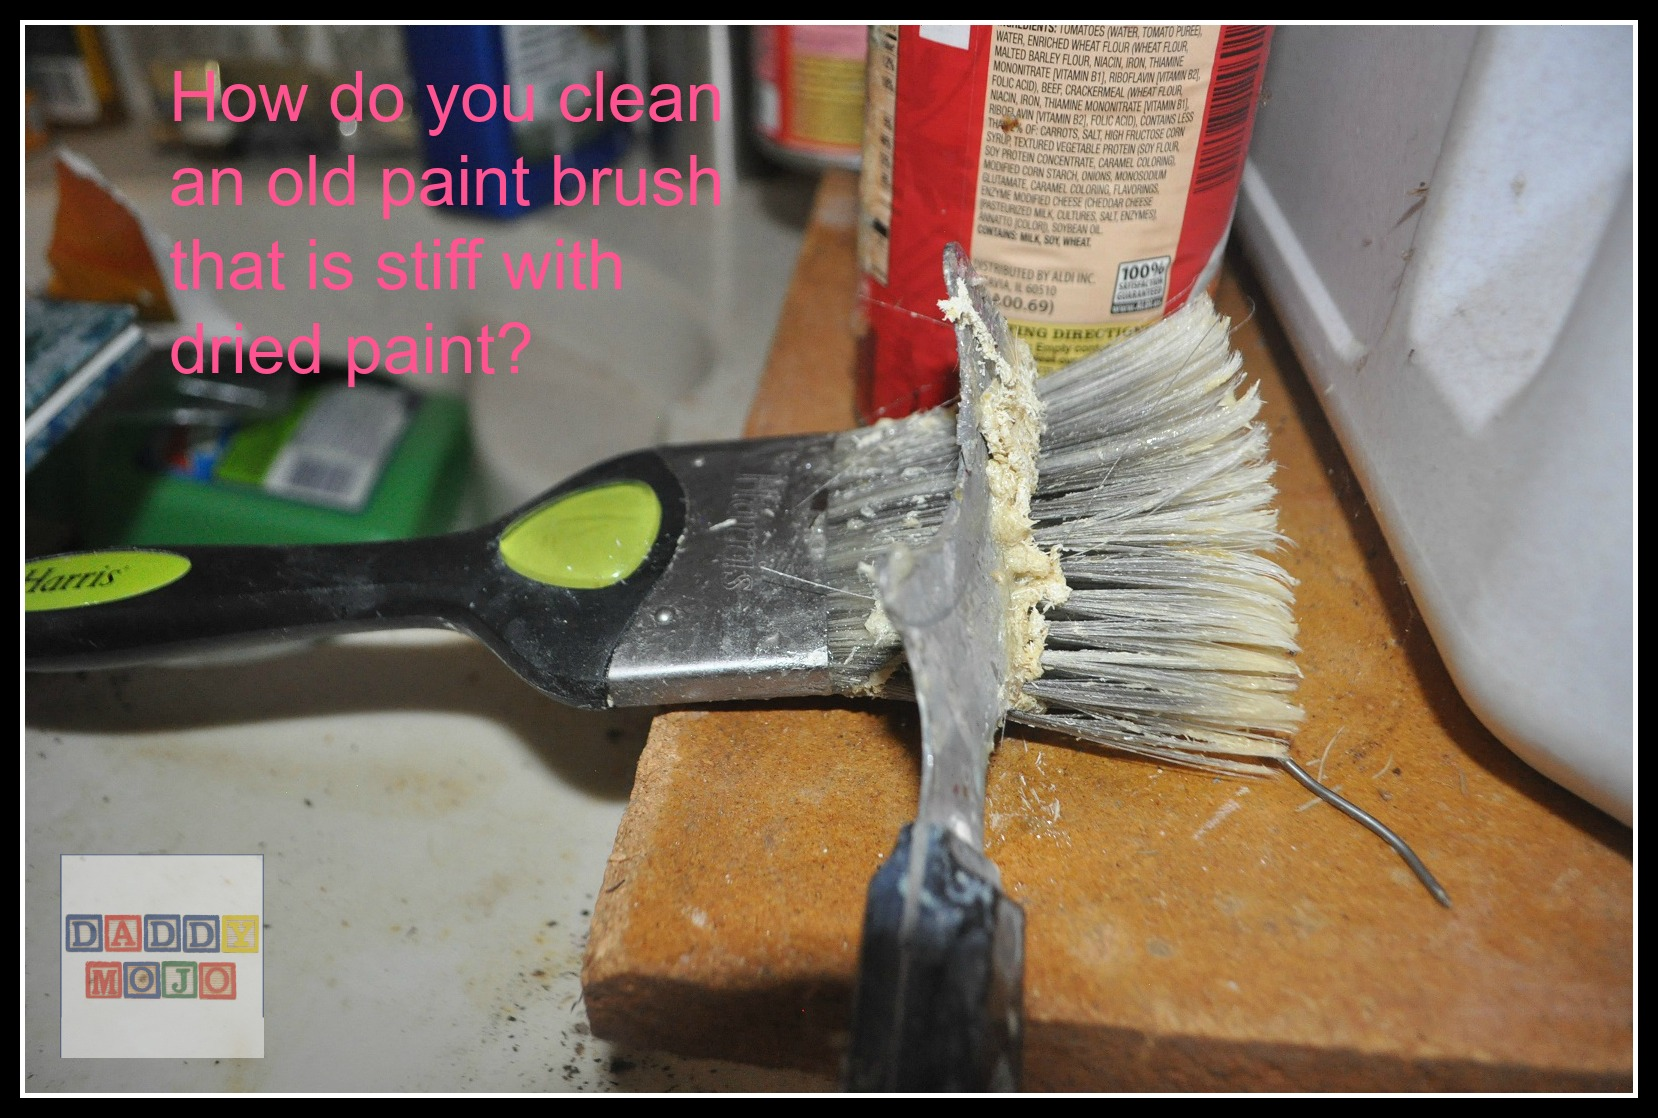 How to clean paintbrushes - How To Clean Paintbrushes 4